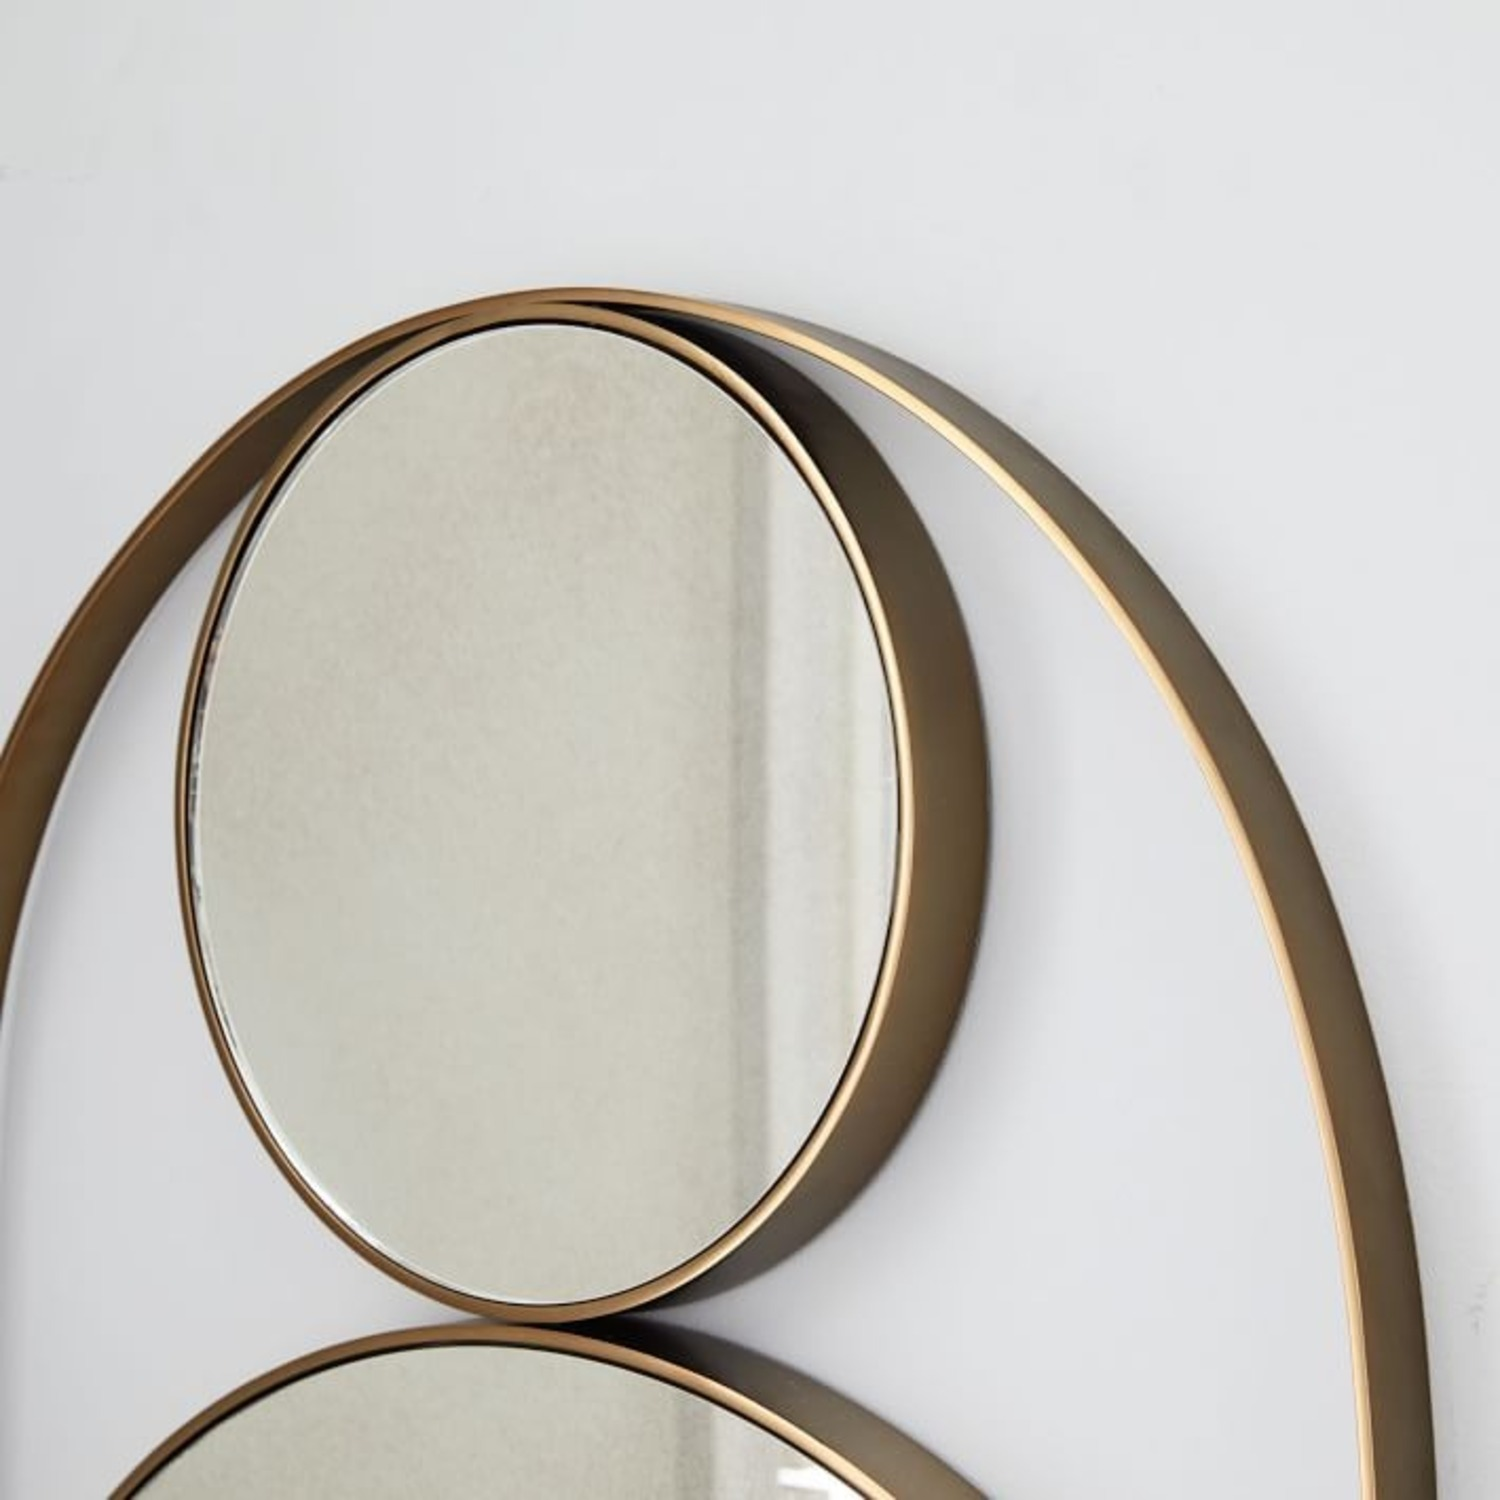 West Elm Celestial Wall Mirror - image-1